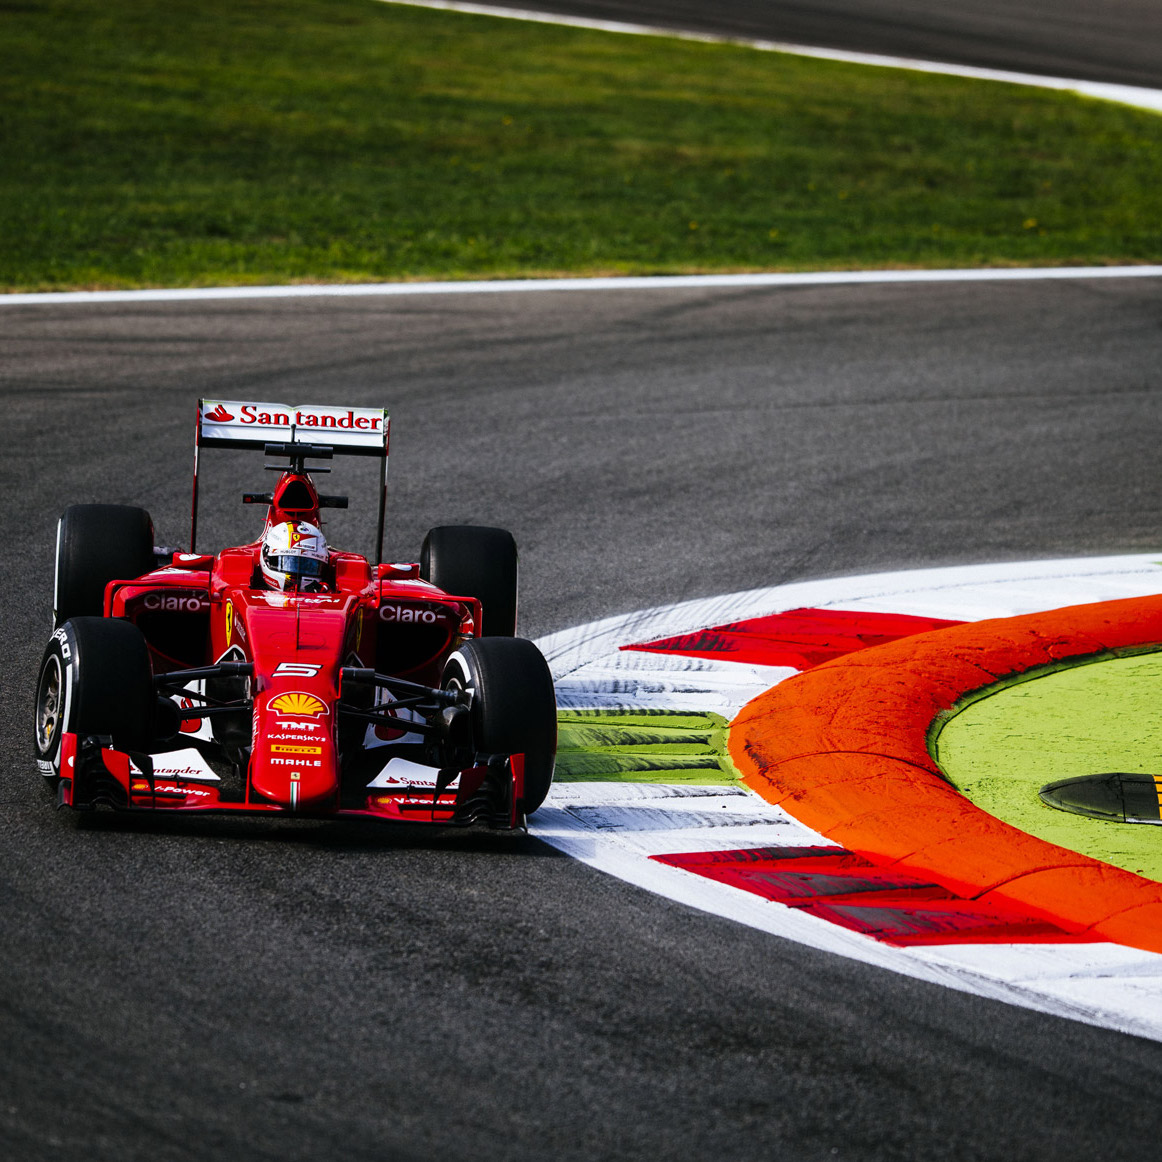 Monza Grand Prix Tickets and Hospitality